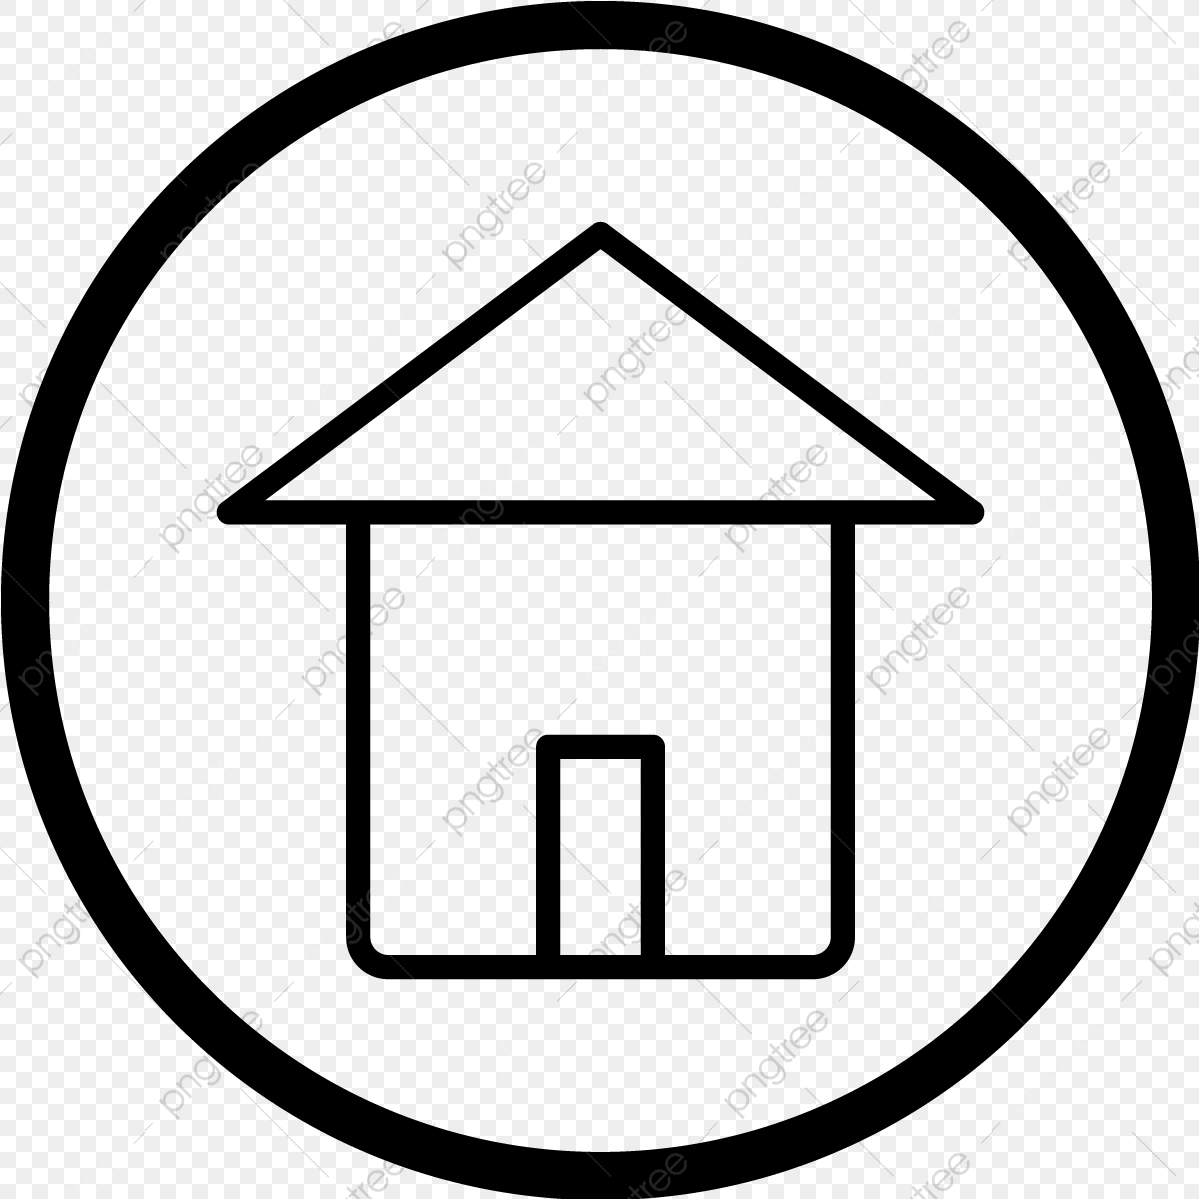 Vector Home Icon Home Icons Home Iconse Home Icon Png And Vector With Transparent Background For Free Download